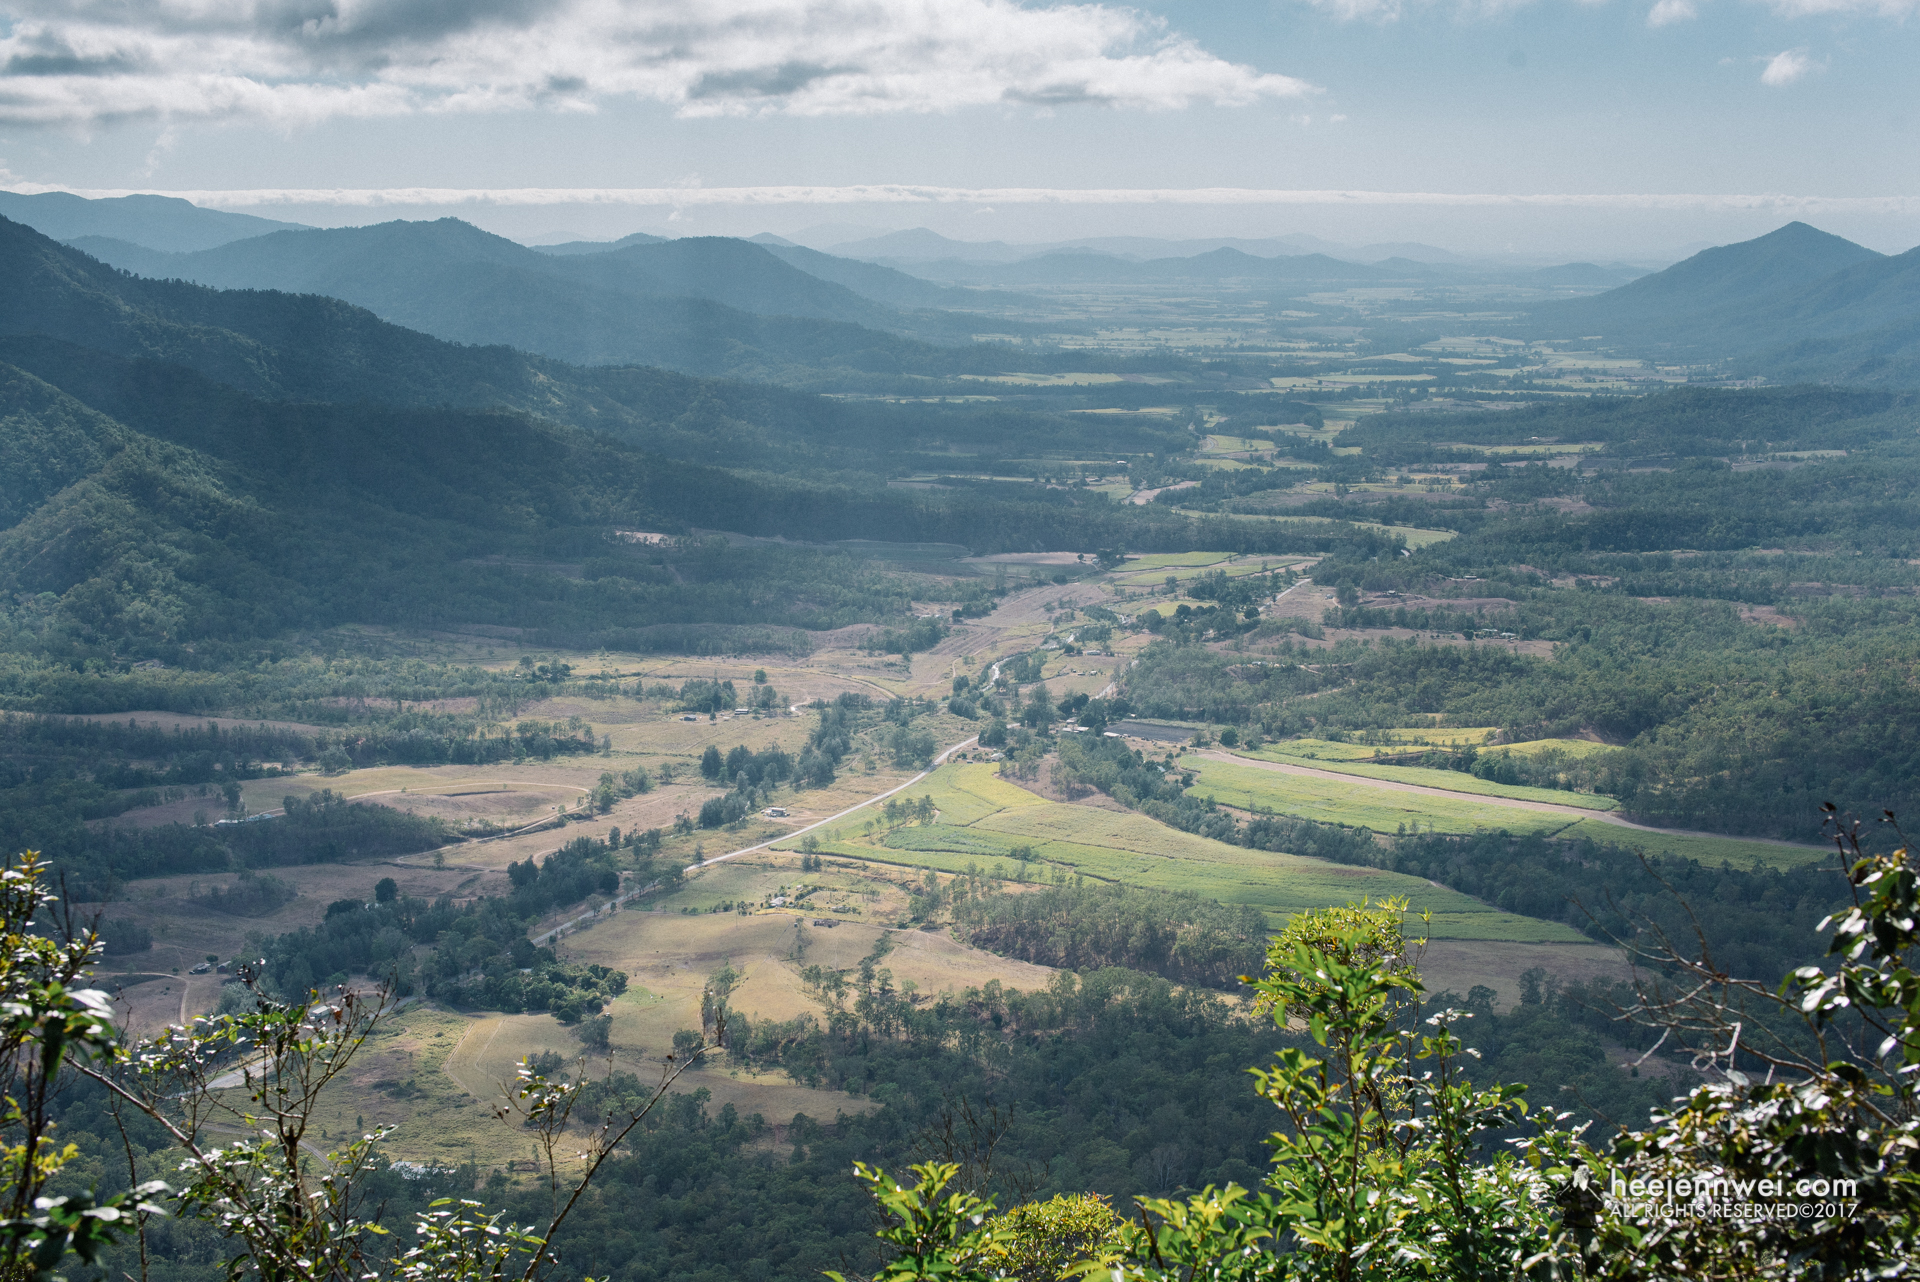 """The view of Pioneer Valley! Eungella National Park.  Sunrise at Cape Hillsborough is around 5.15am (double check sunrise time), i'd suggest to leave the national park before 6.45am if possible. Start your journey to Eungella National Park (look up for """"Platypus Lodge Restaurant""""), it'll take 1.5 hrs, get there before 8.30am will be ideal. This is because Platypus' active time is from 7am to 9am, and you don't want to miss that."""